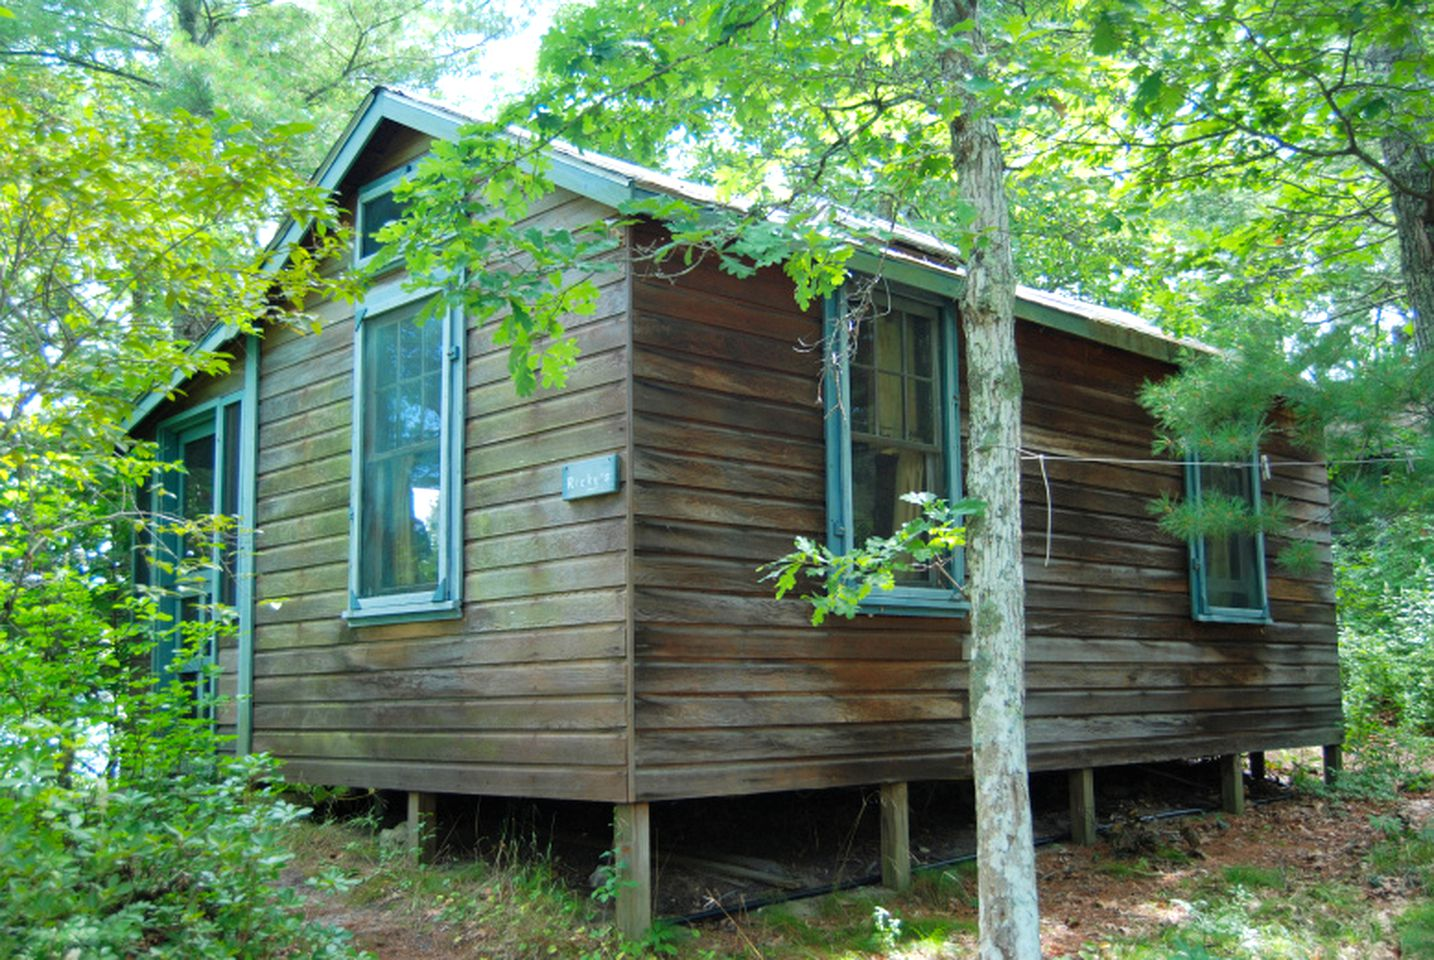 Green leaves surround Cape Cod cabin rental: Massachusetts, US